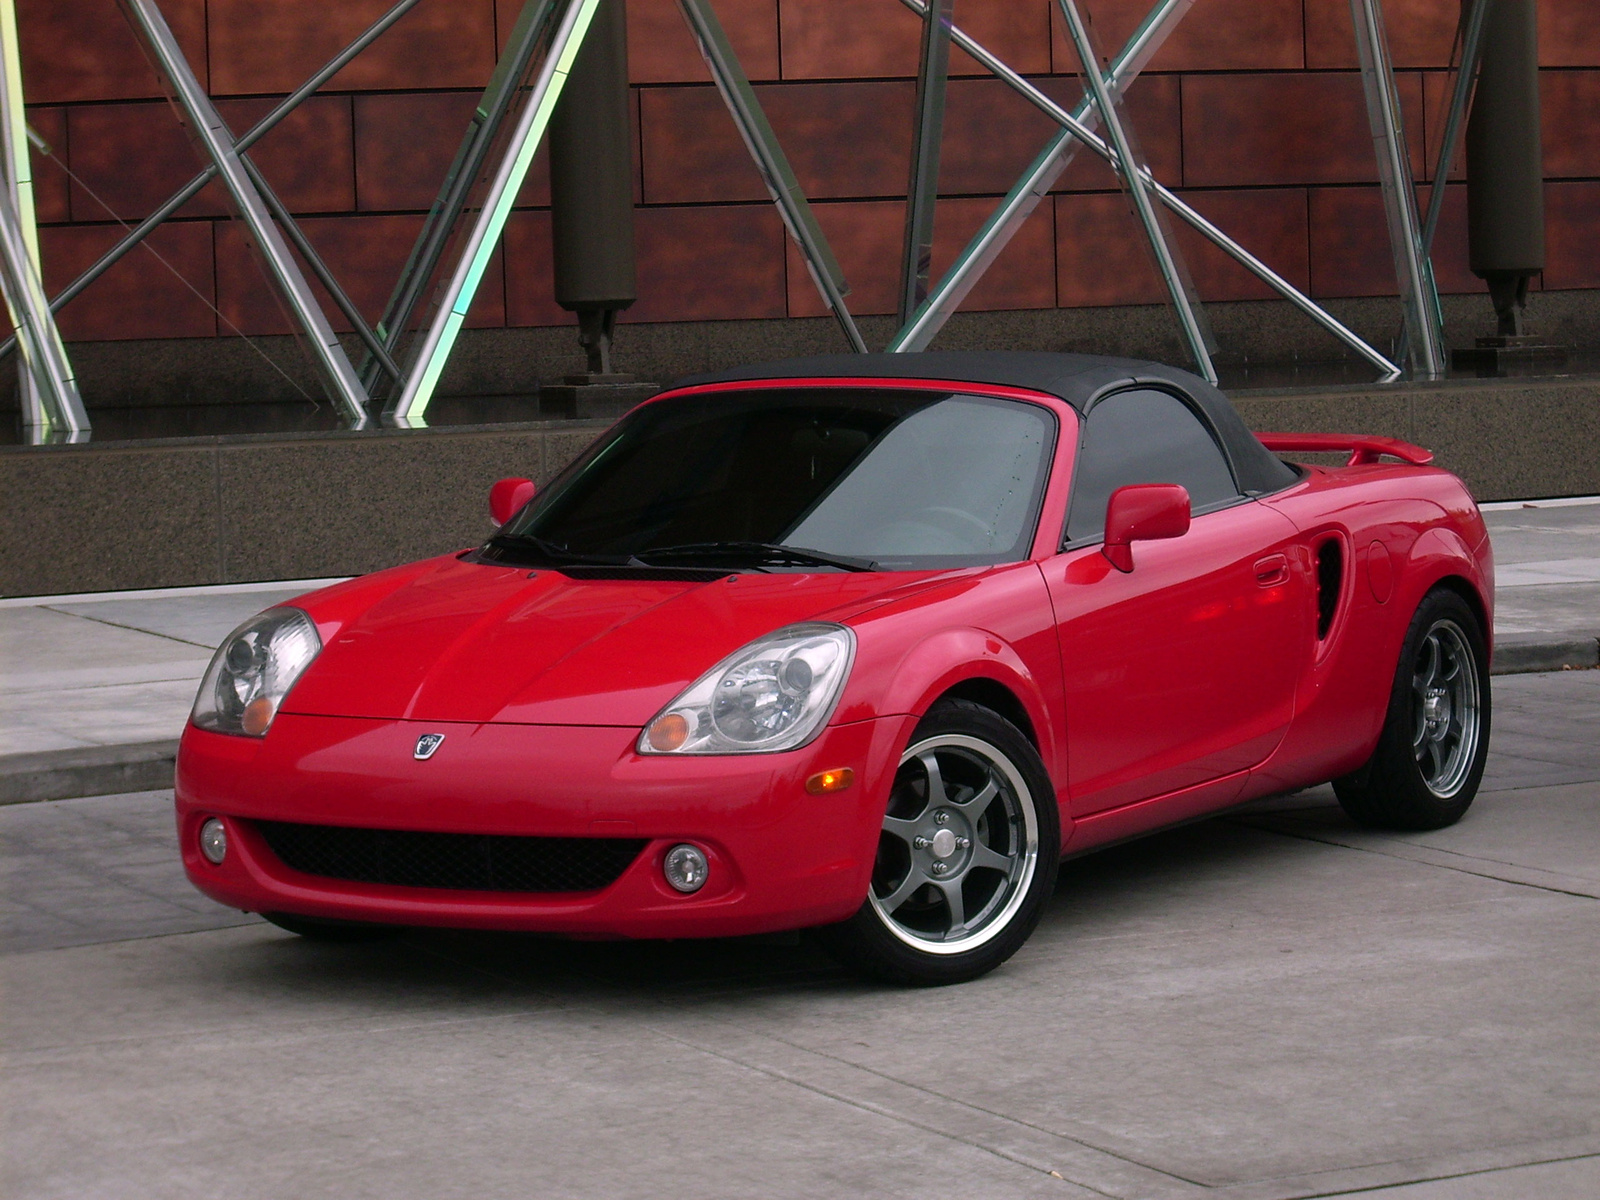 2005 Toyota Mr2 Spyder #5